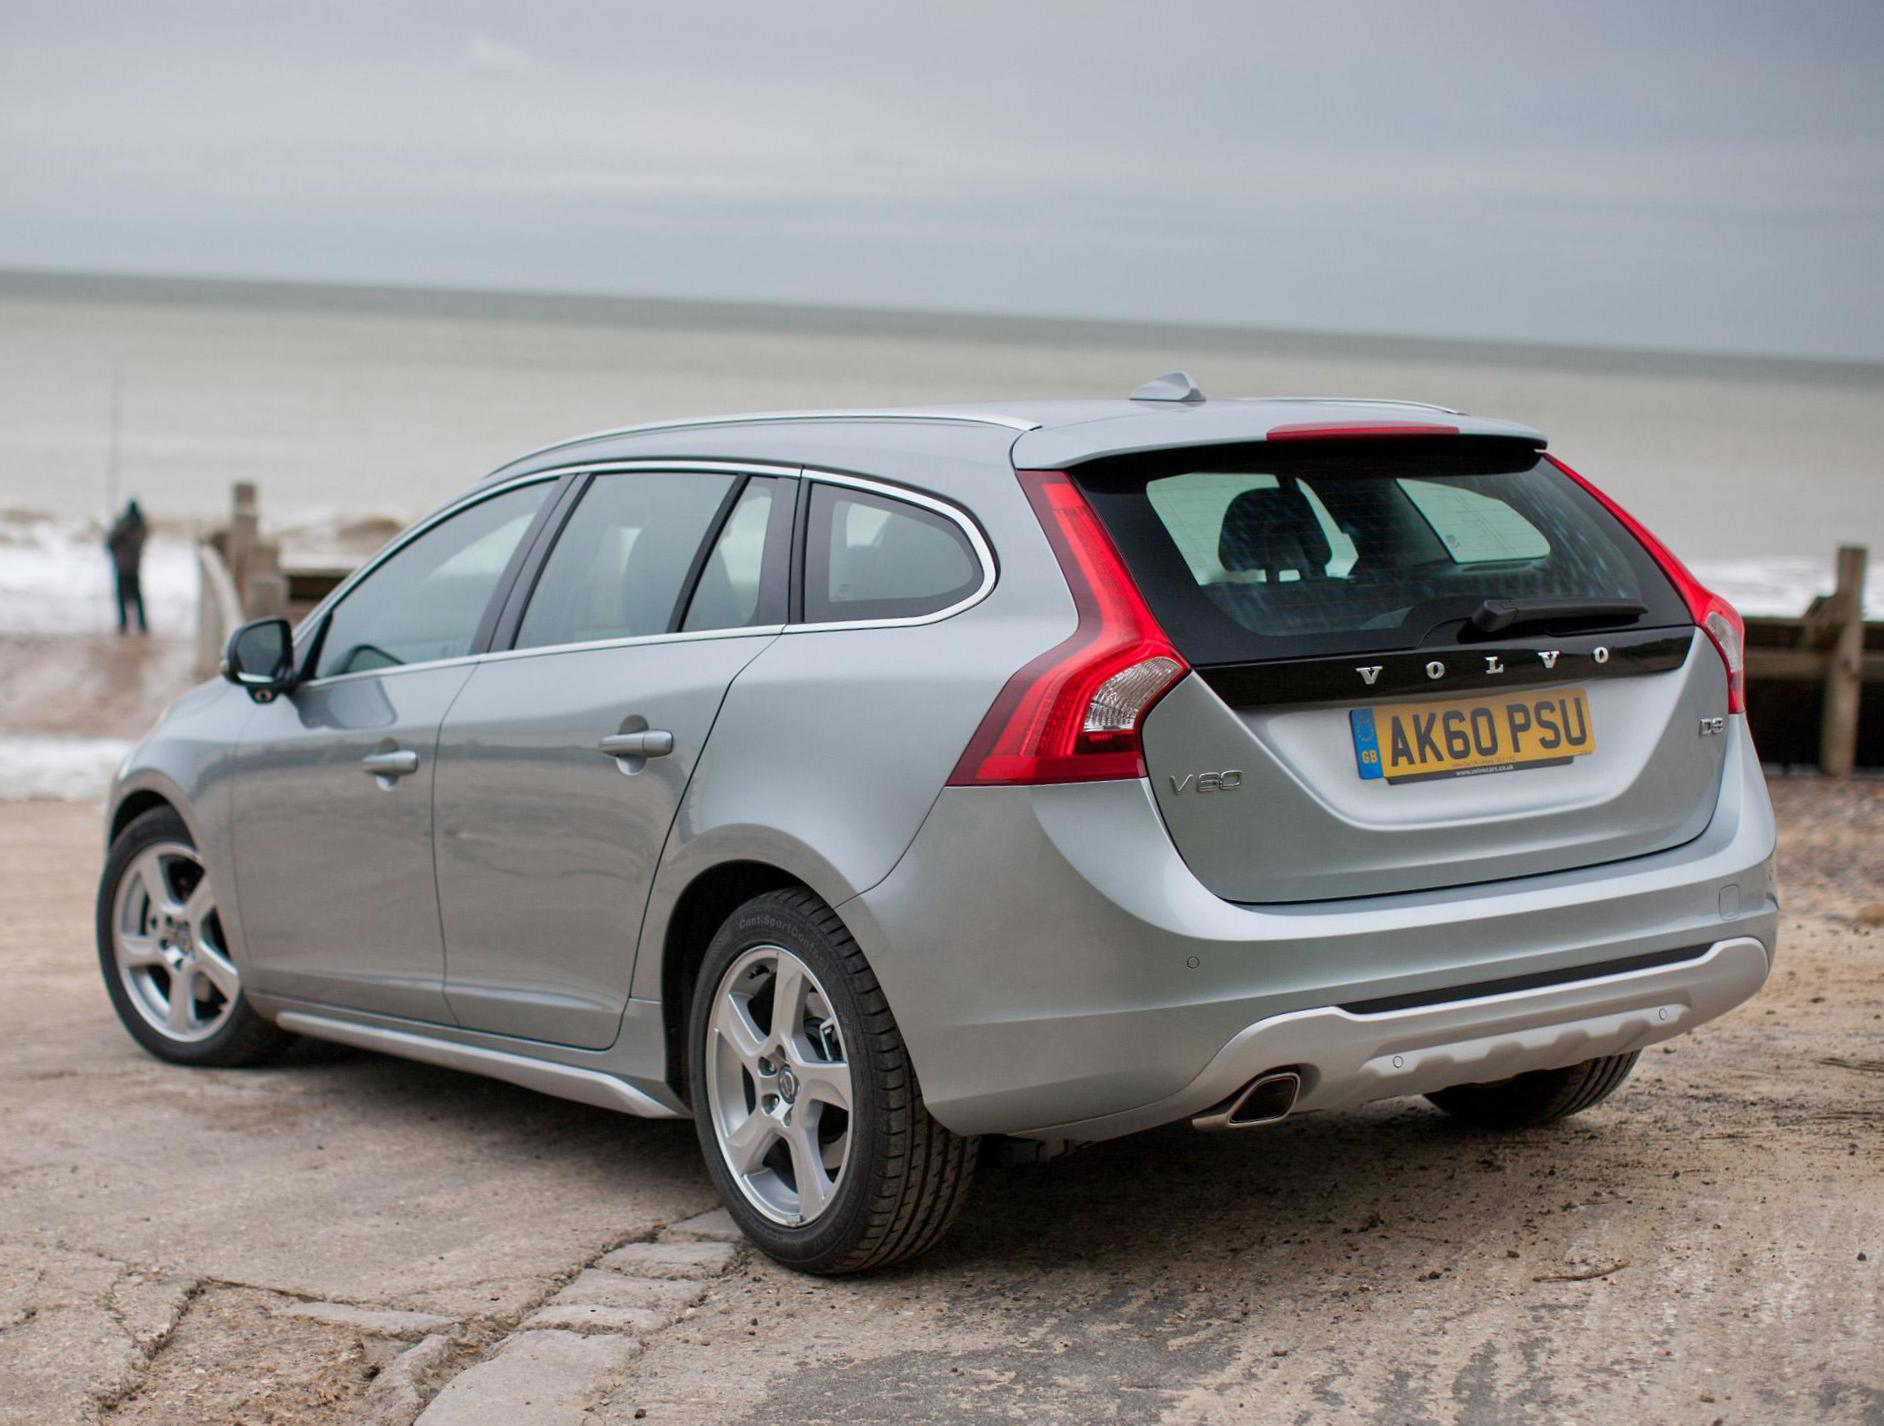 V60 Volvo for sale suv